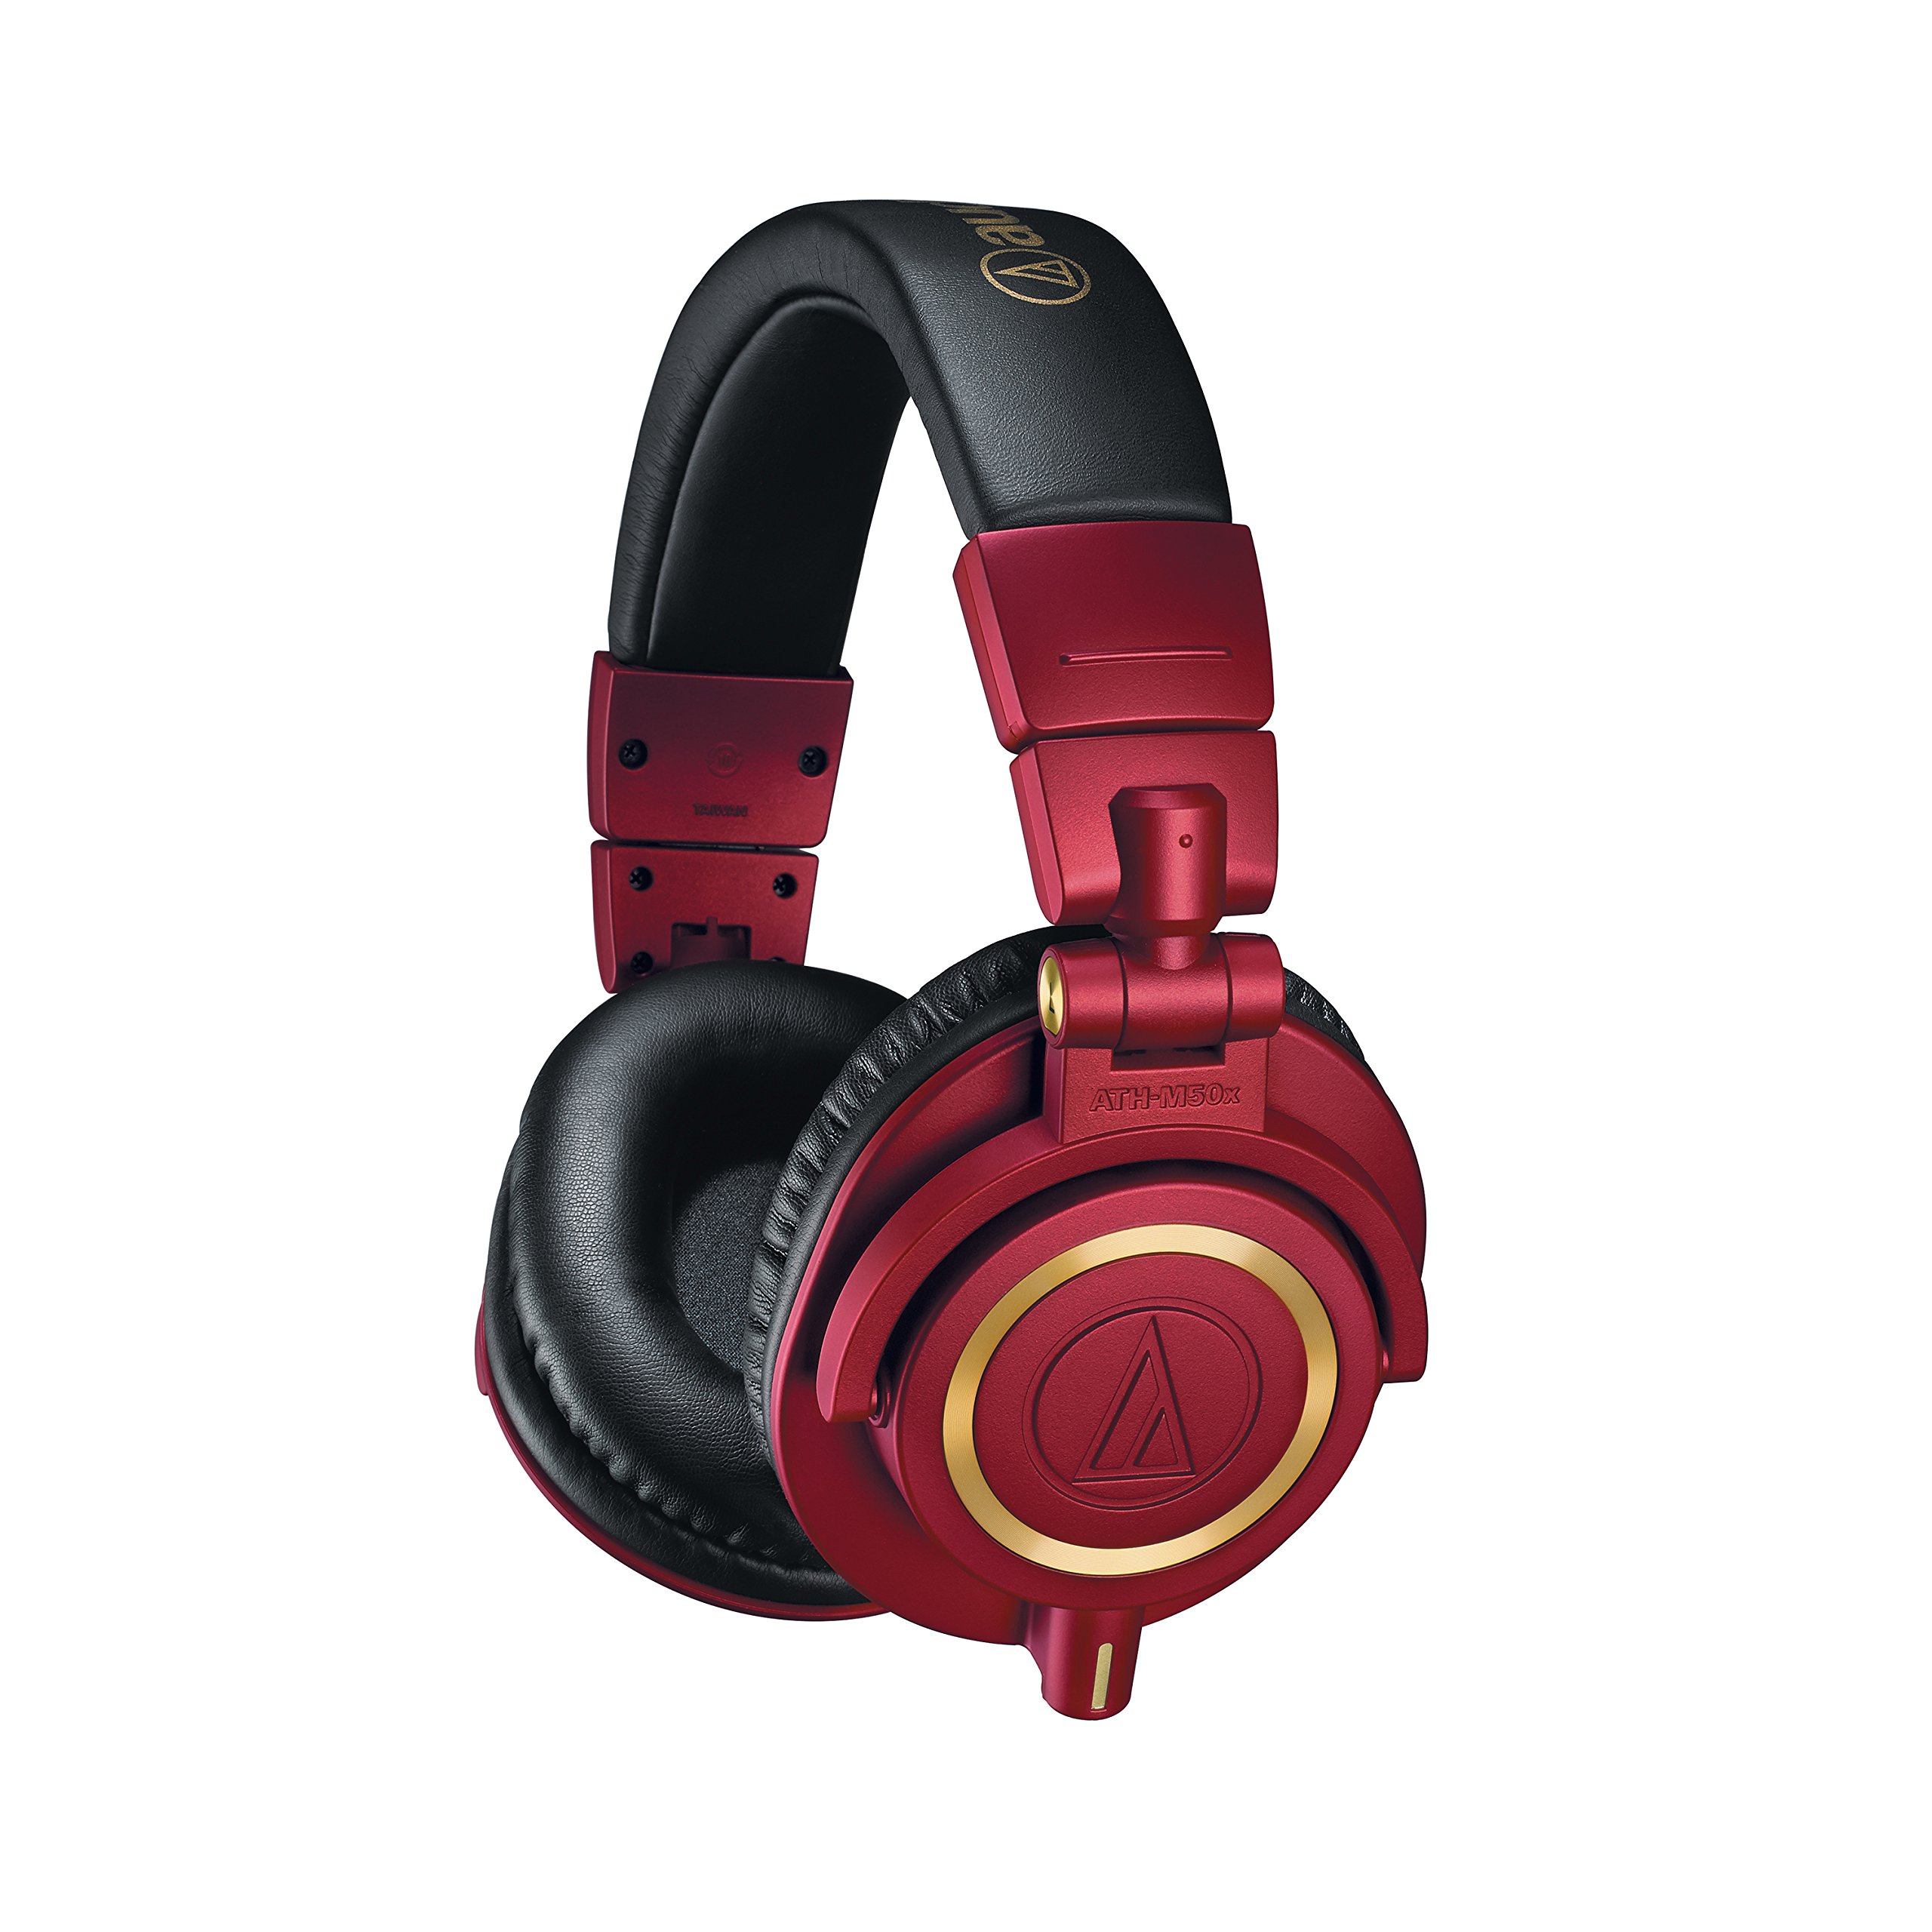 Audio-Technica ATH-M50xRD Professional Monitor Headphones, Red by Audio-Technica